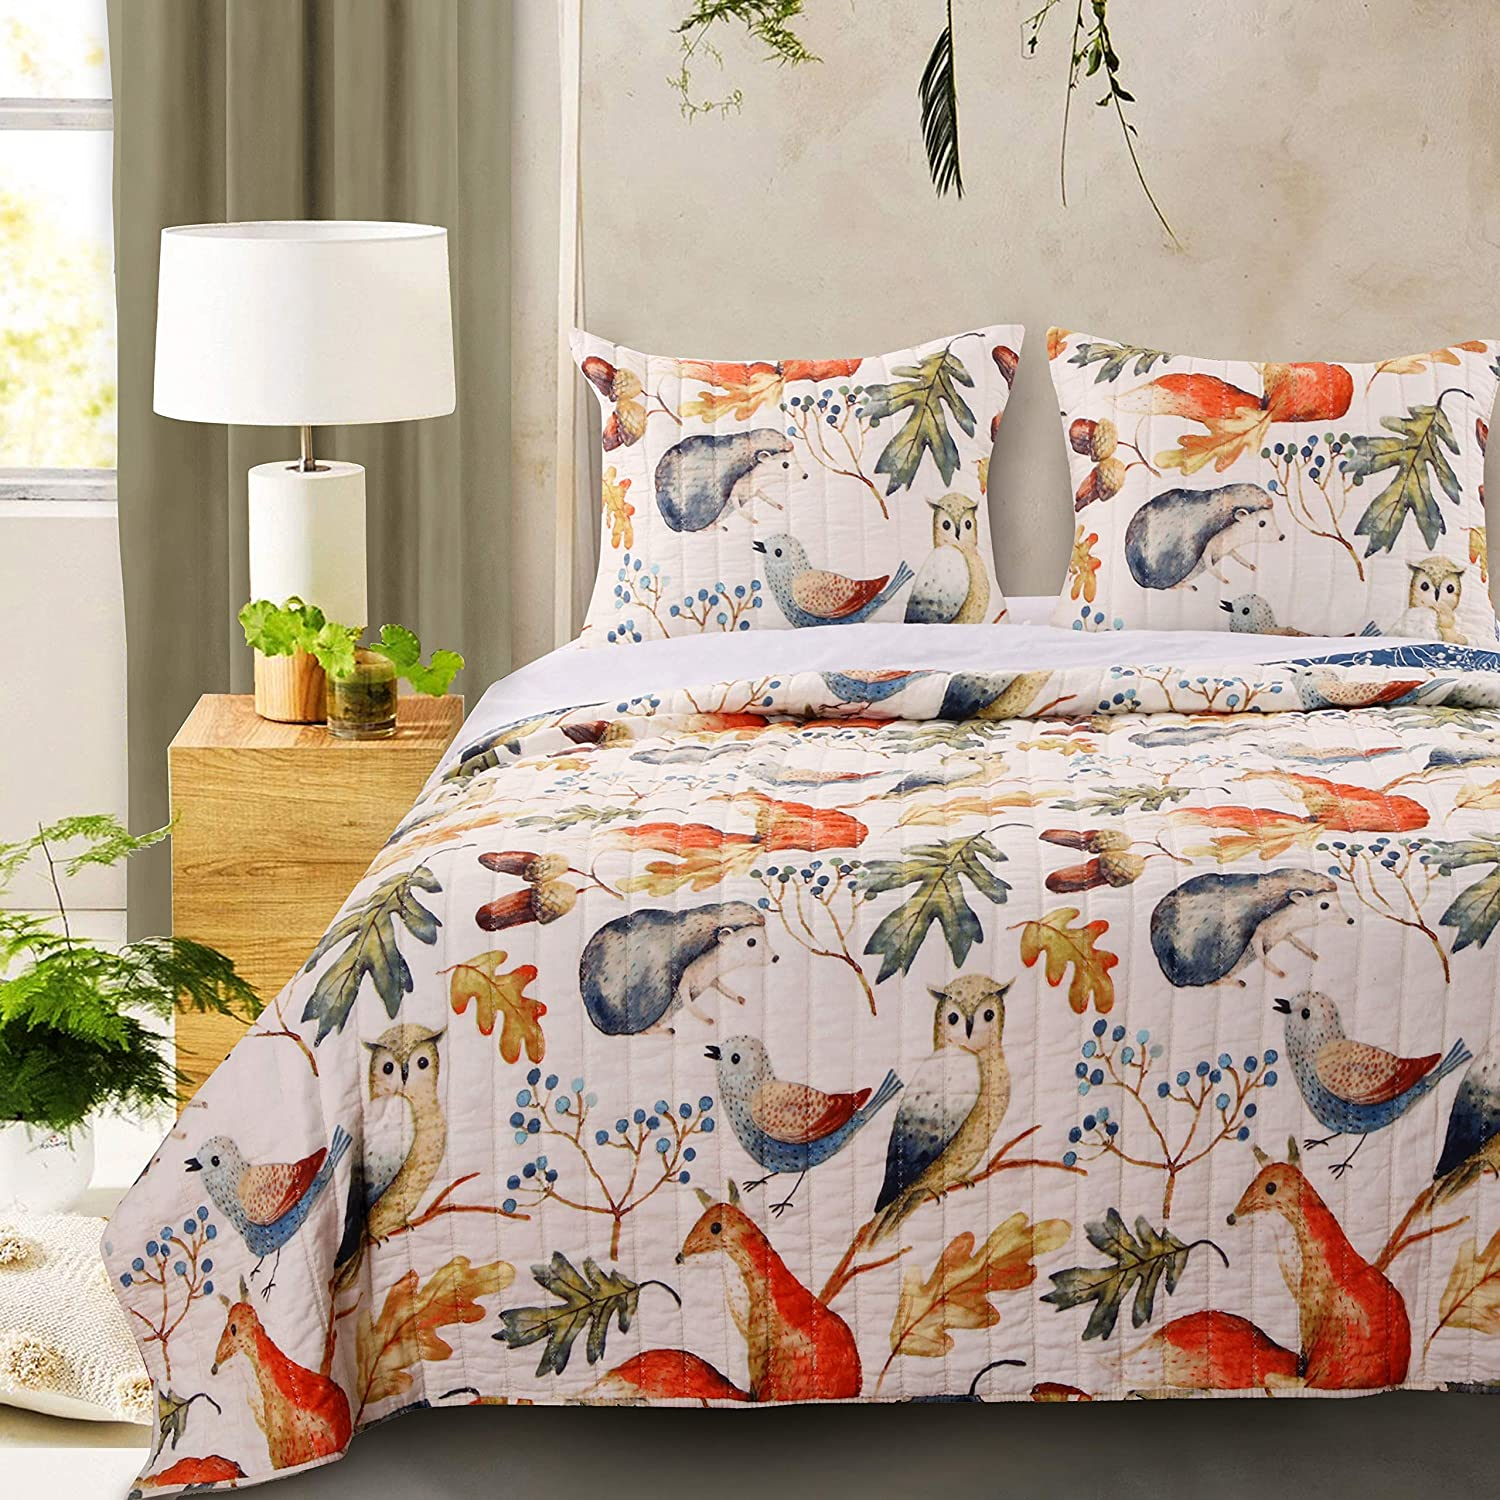 Barefoot Bungalow Willow Quilt Set, King, Off/White,GL-1806BMSK